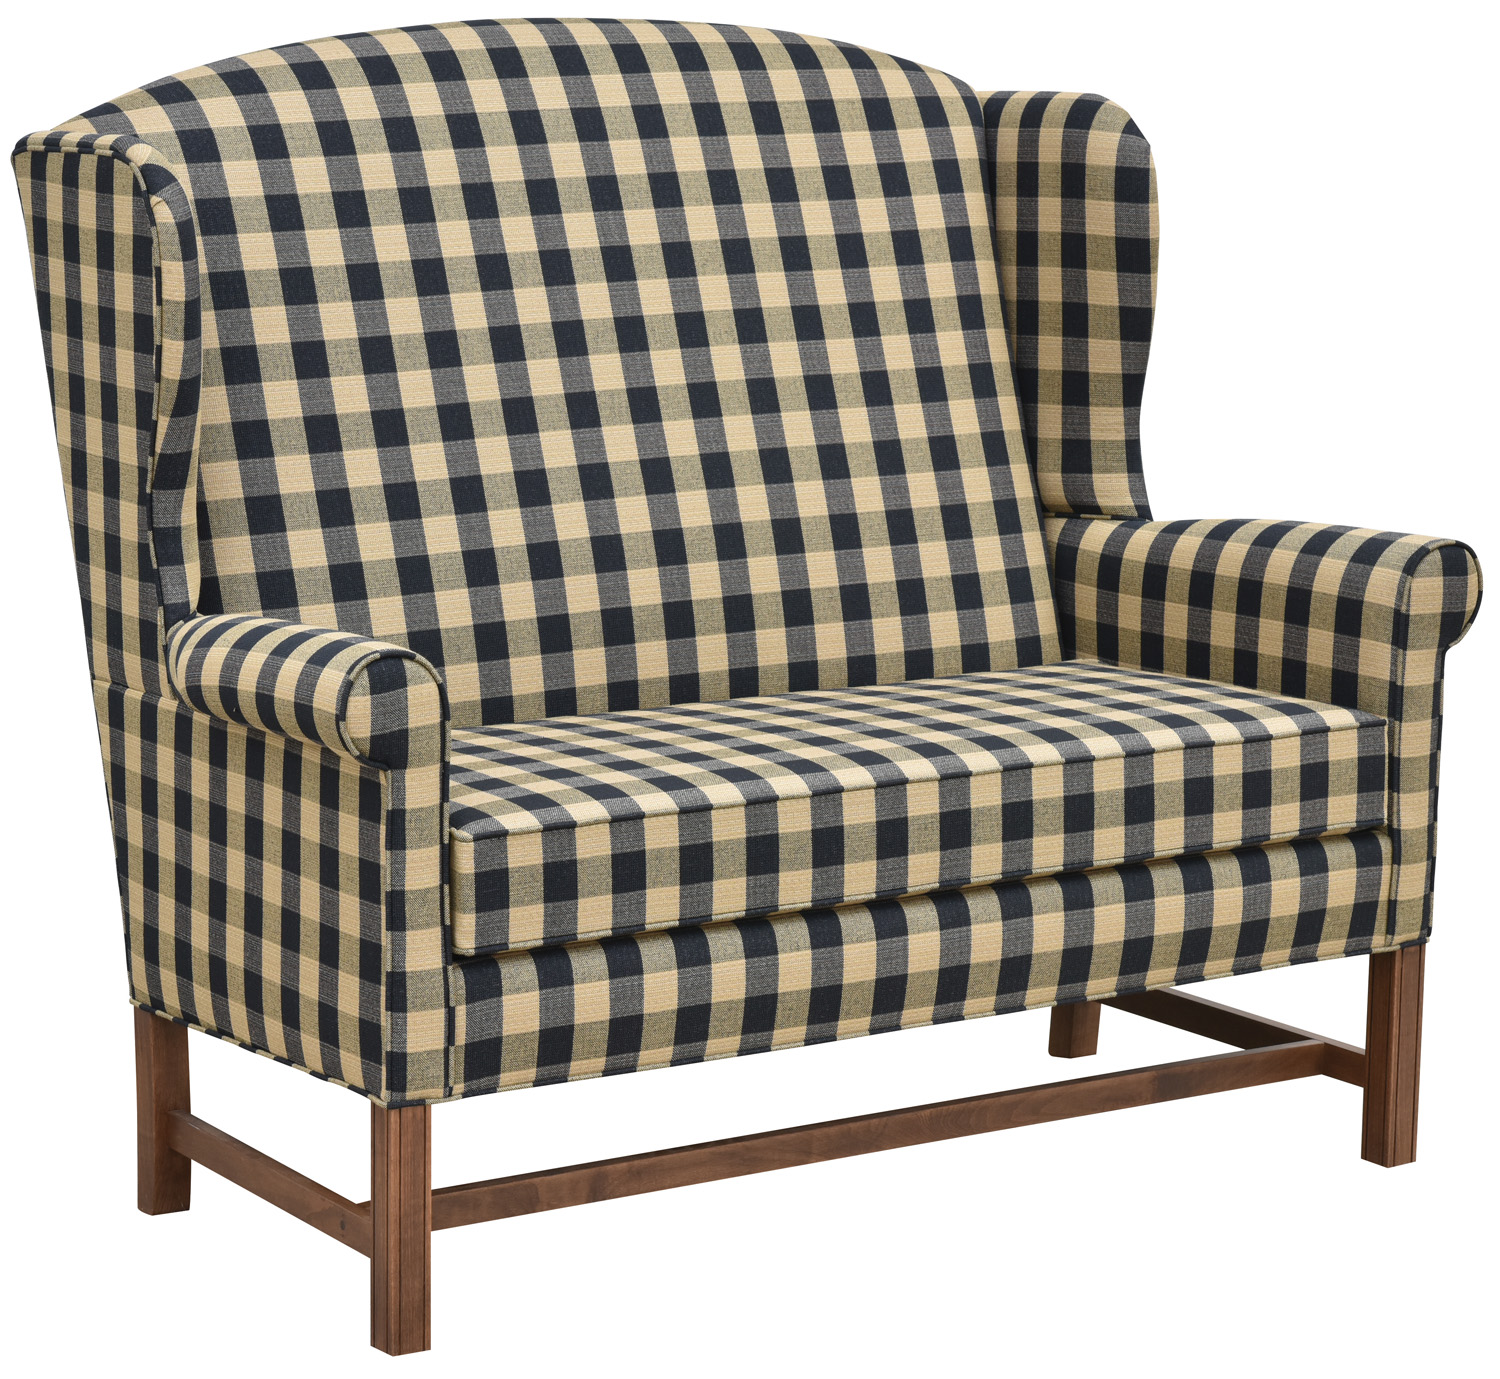 Laurel Ridge Wing Chair Colonial Housecolonial House